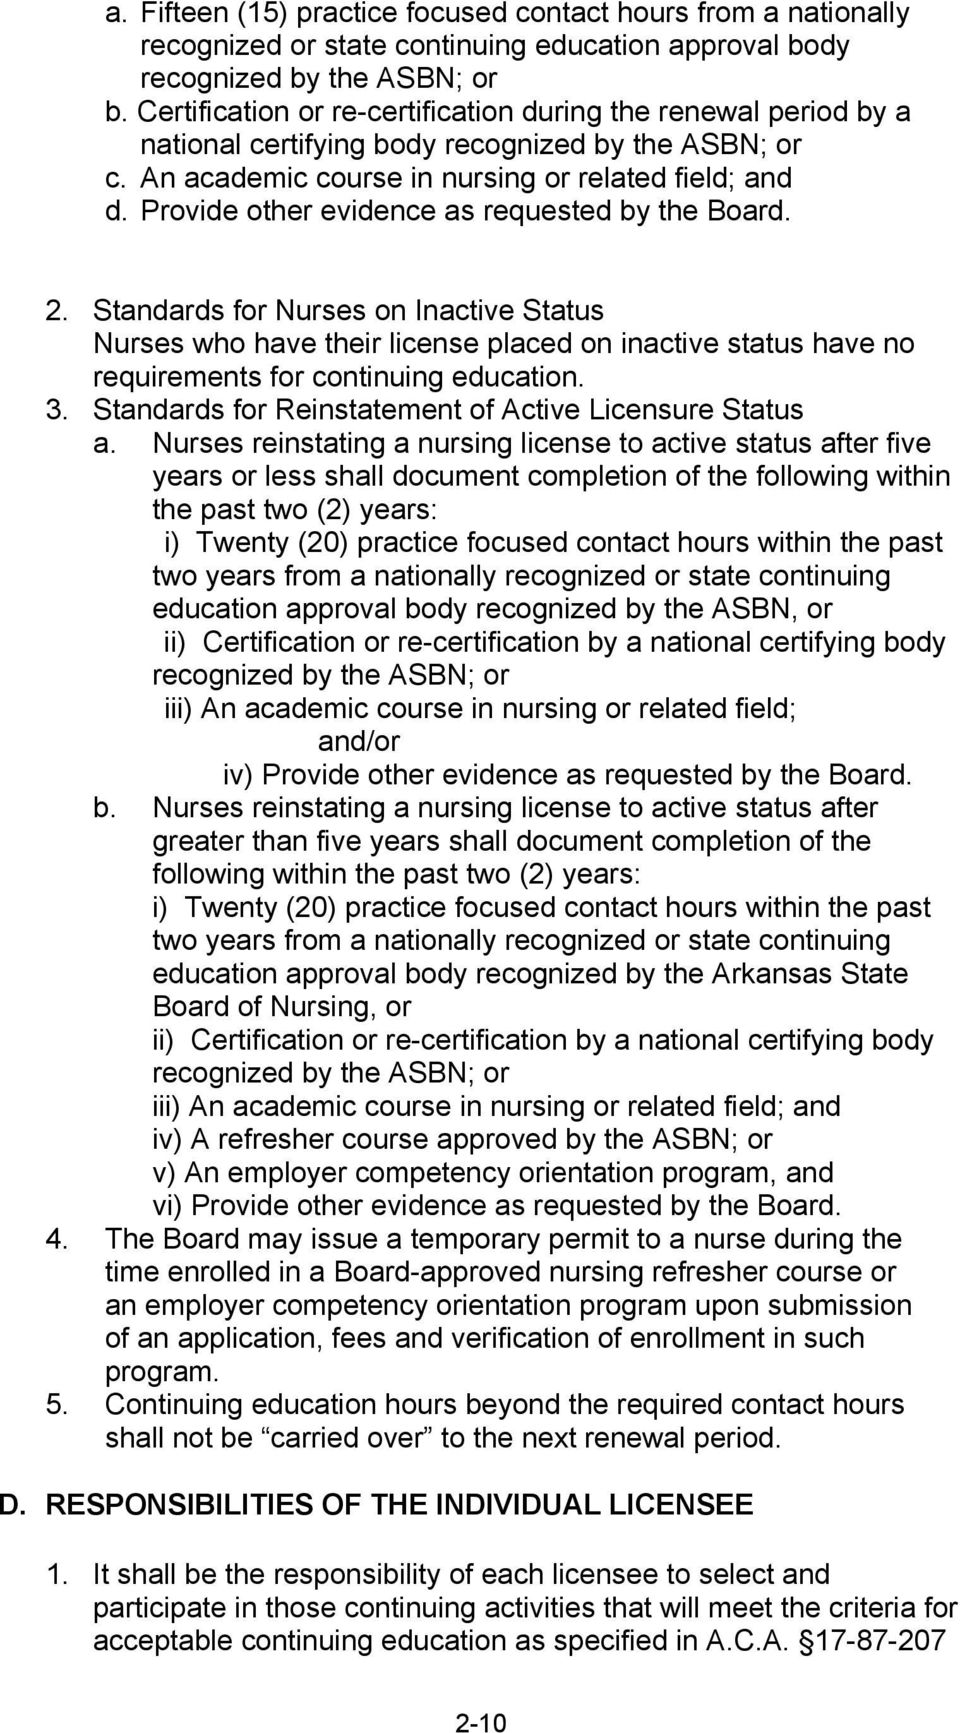 Provide other evidence as requested by the Board. 2. Standards for Nurses on Inactive Status Nurses who have their license placed on inactive status have no requirements for continuing education. 3.